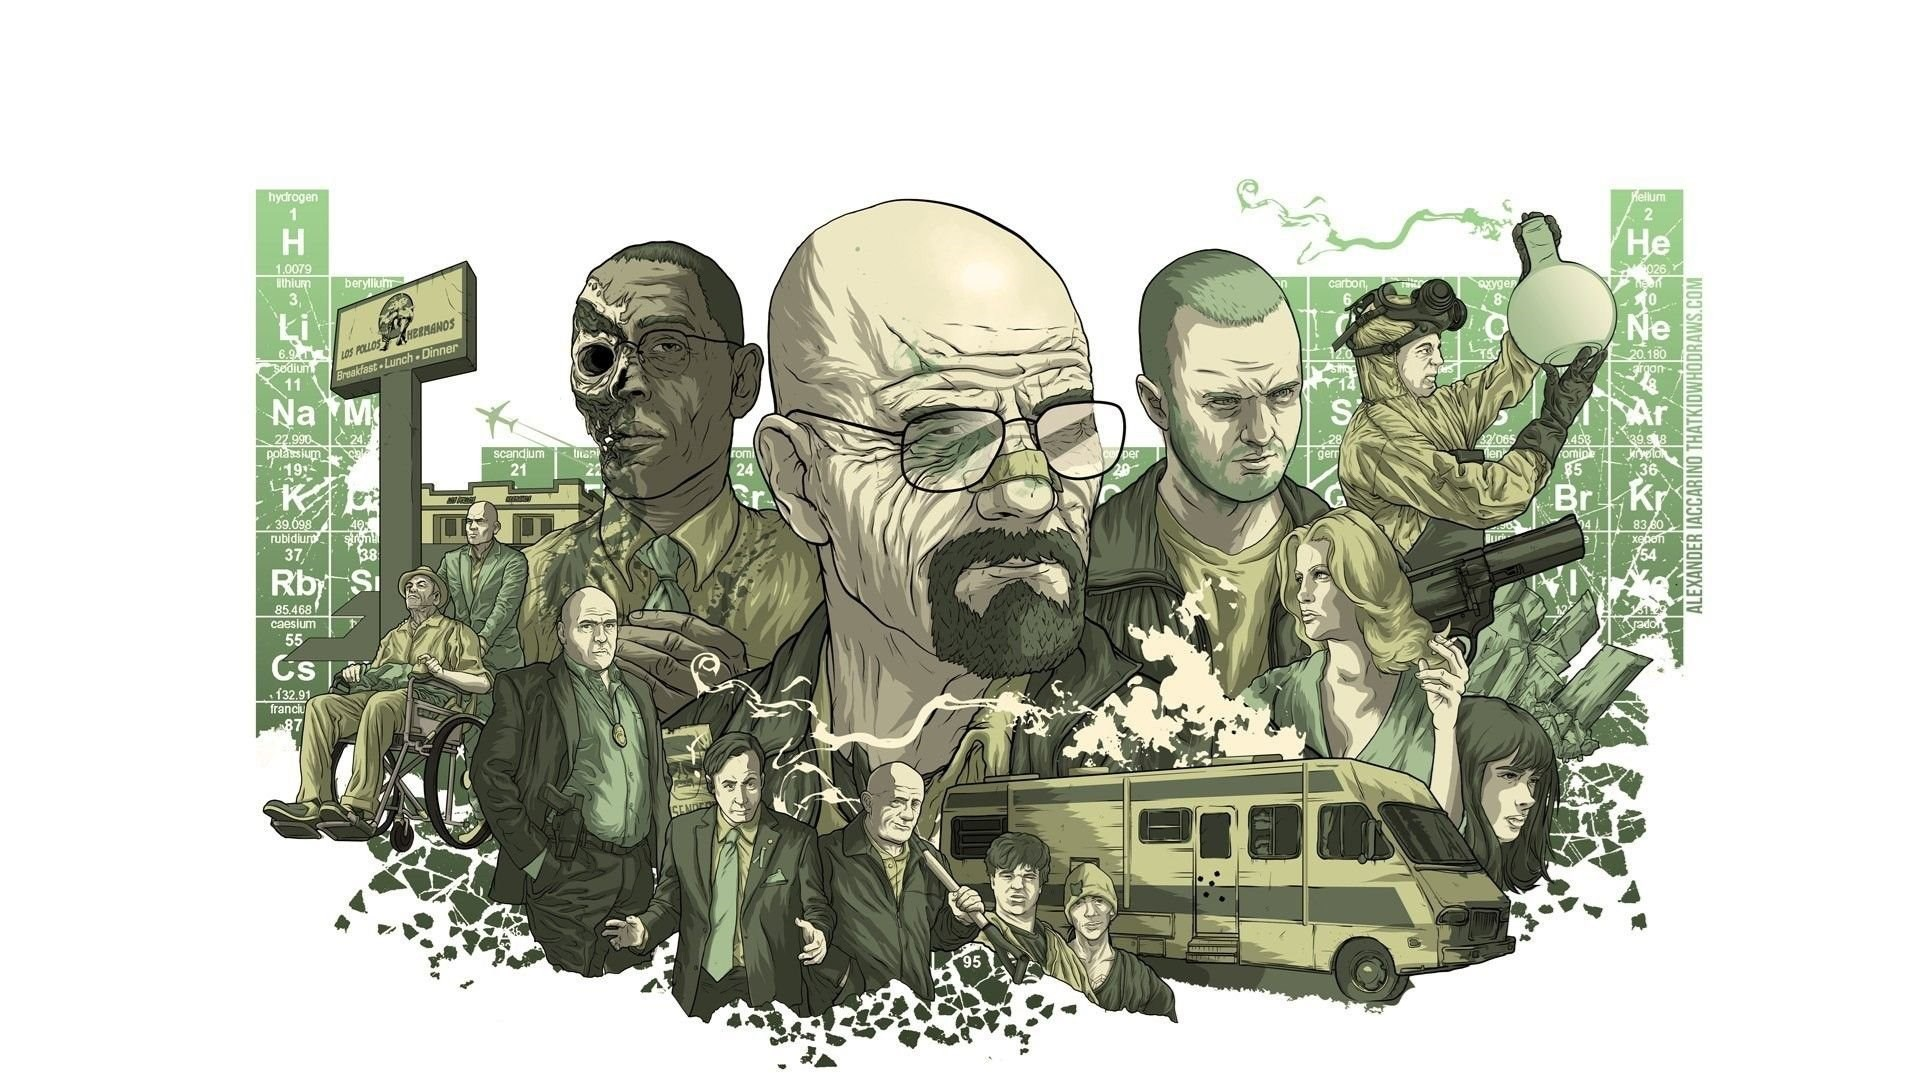 Full Hd 1080p Breaking Bad Wallpapers Hd Desktop Backgrounds